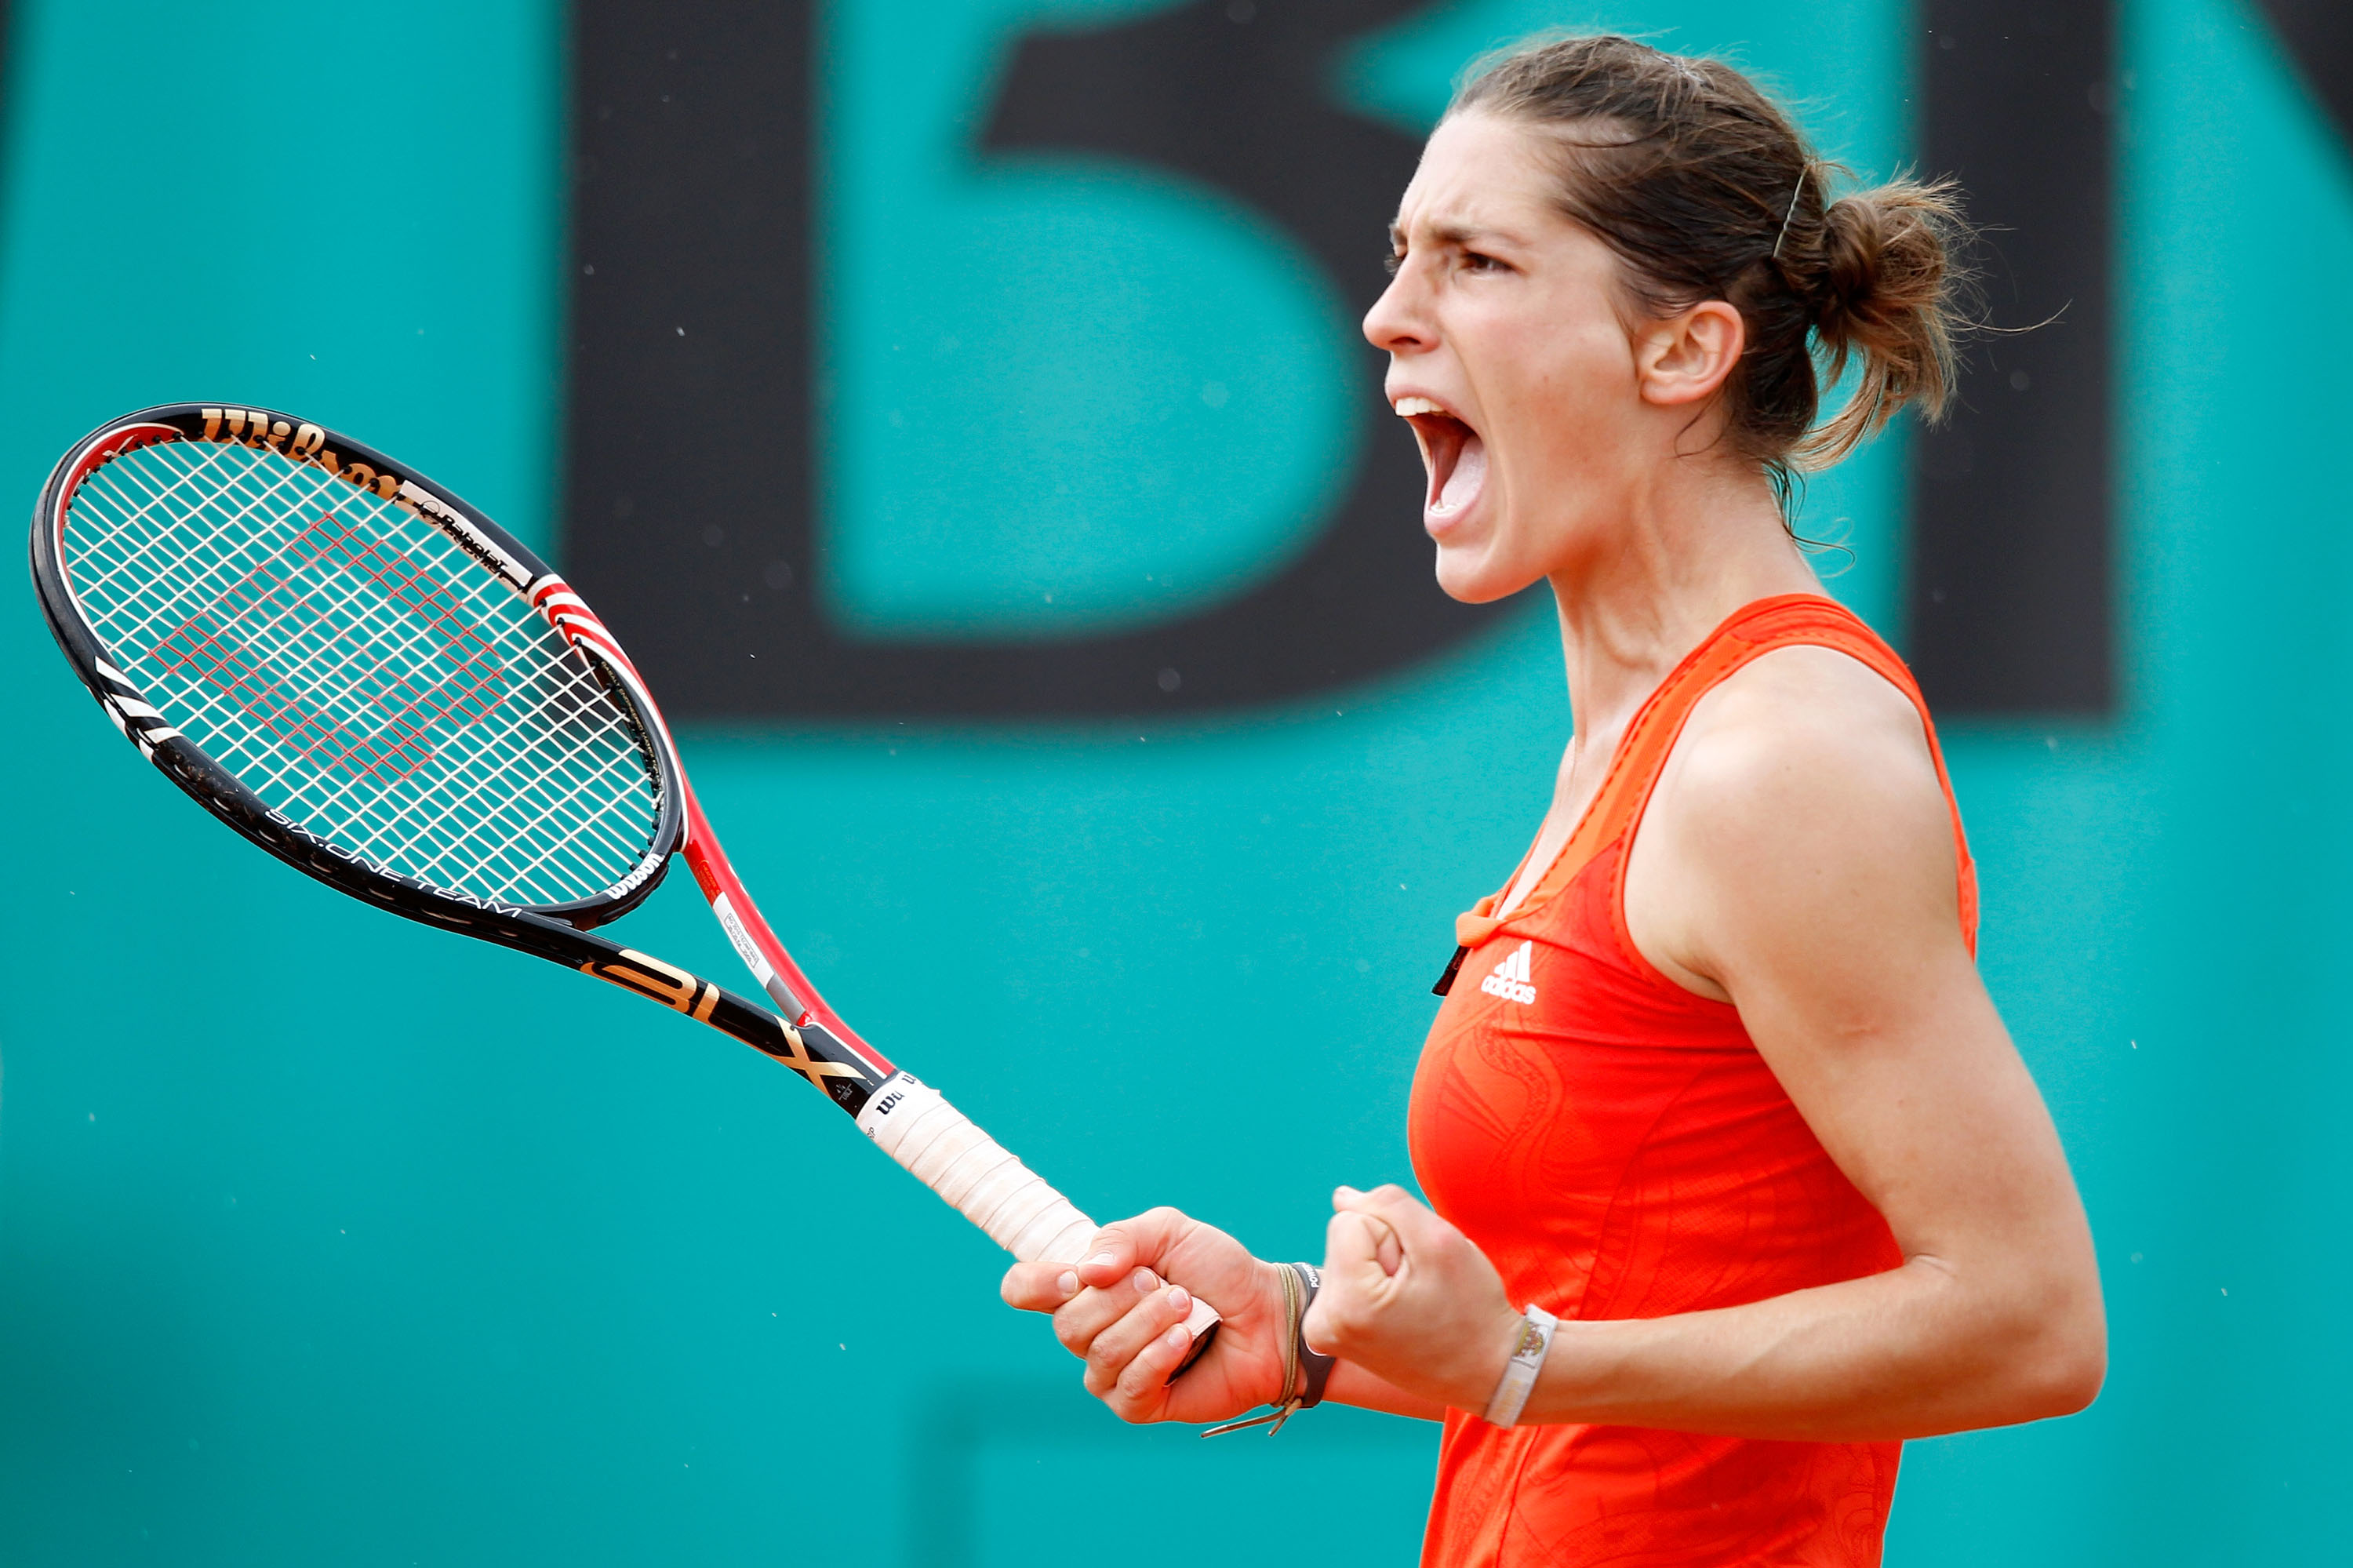 PARIS - MAY 26:  Andrea Petkovic of Germany celebrates during the women's singles second round match between Svetlana Kuznetsova of Russia and Andrea Petkovic of Germany on day four of the French Open at Roland Garros on May 26, 2010 in Paris, France.  (P